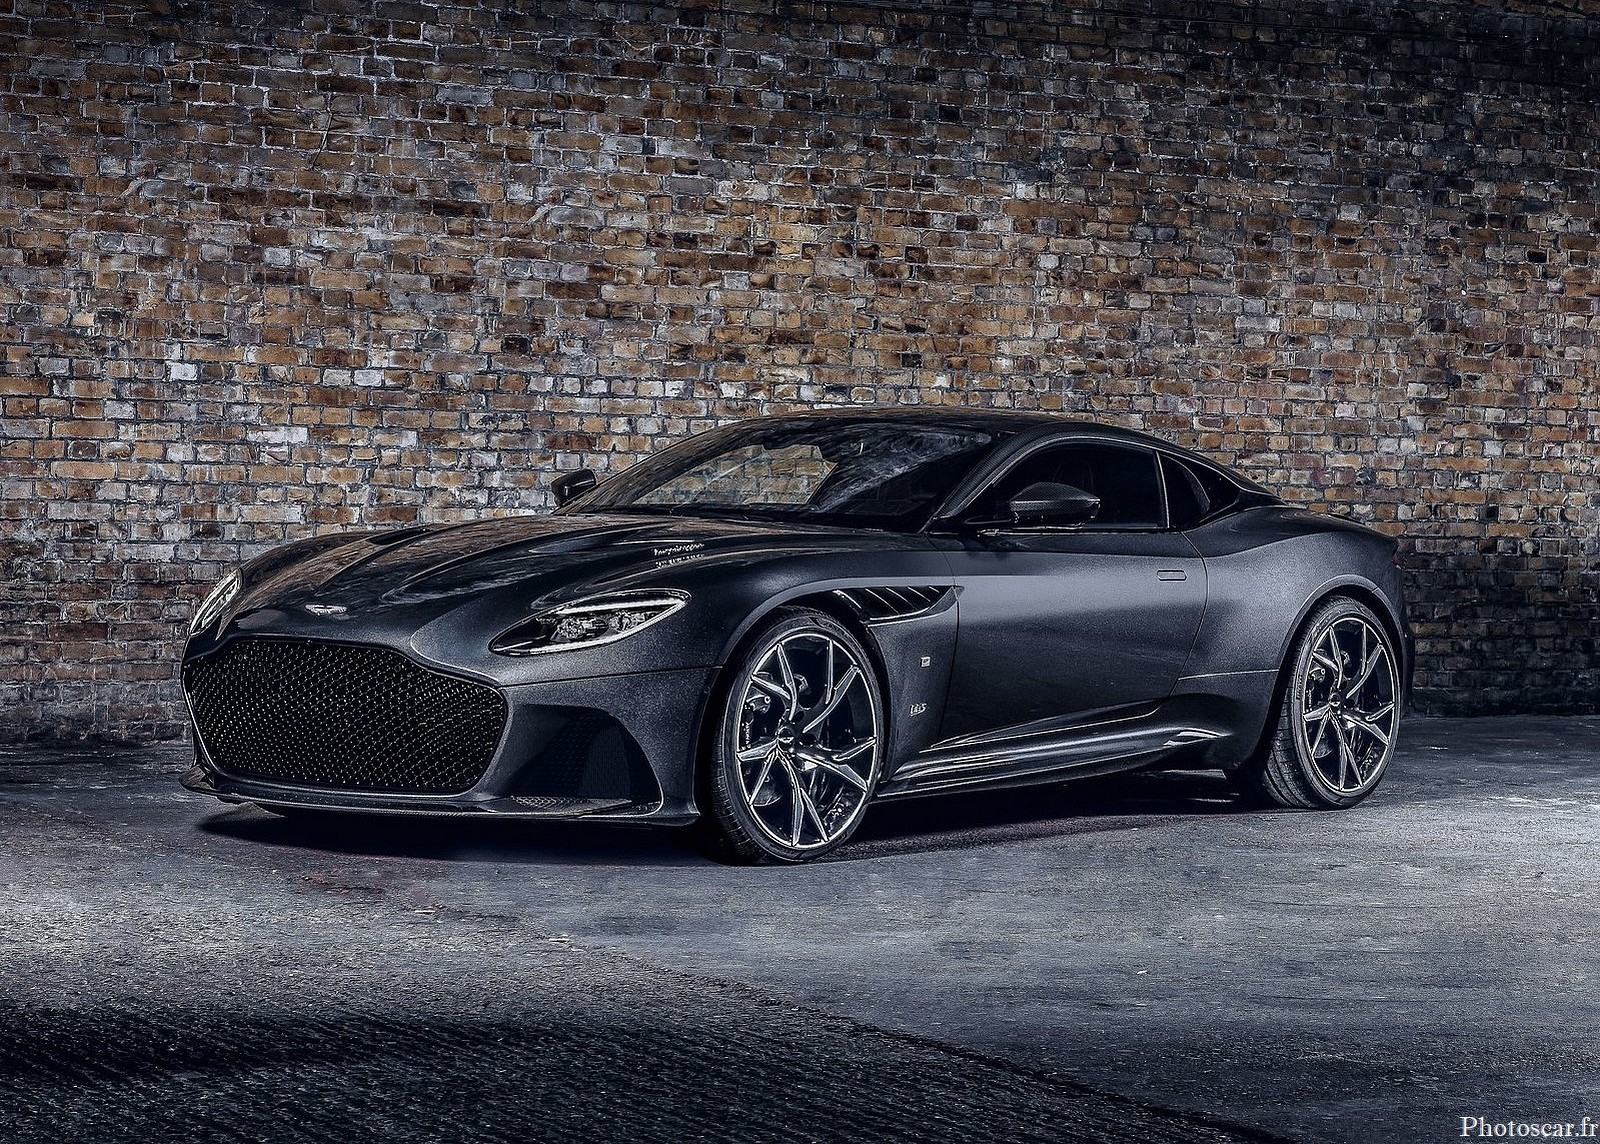 Aston Martin DBS Superleggera 007 édition 2021